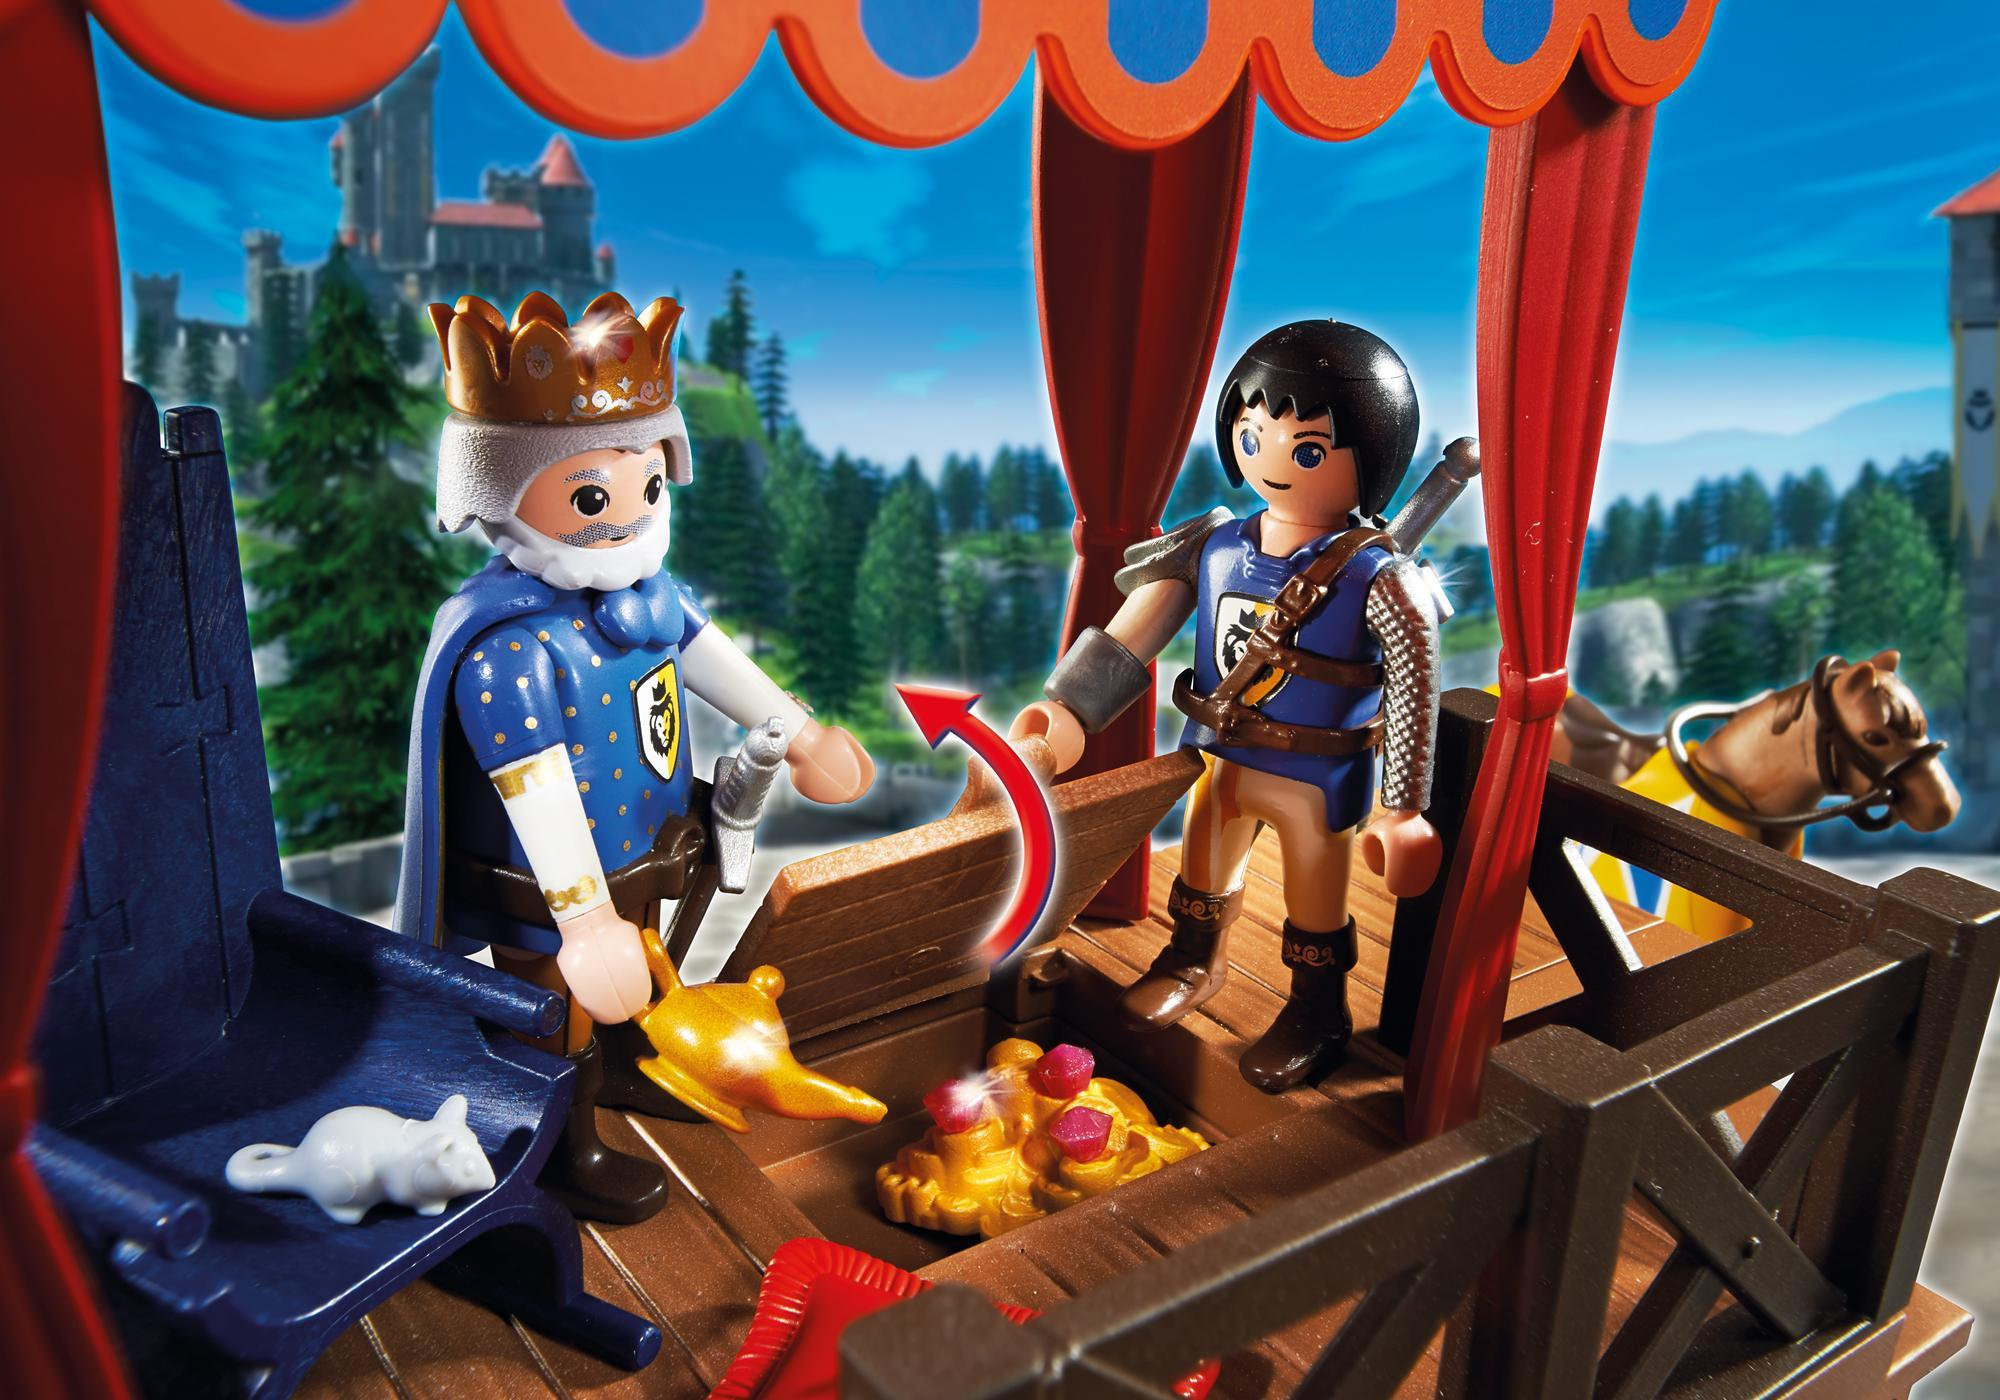 http://media.playmobil.com/i/playmobil/6695_product_extra1